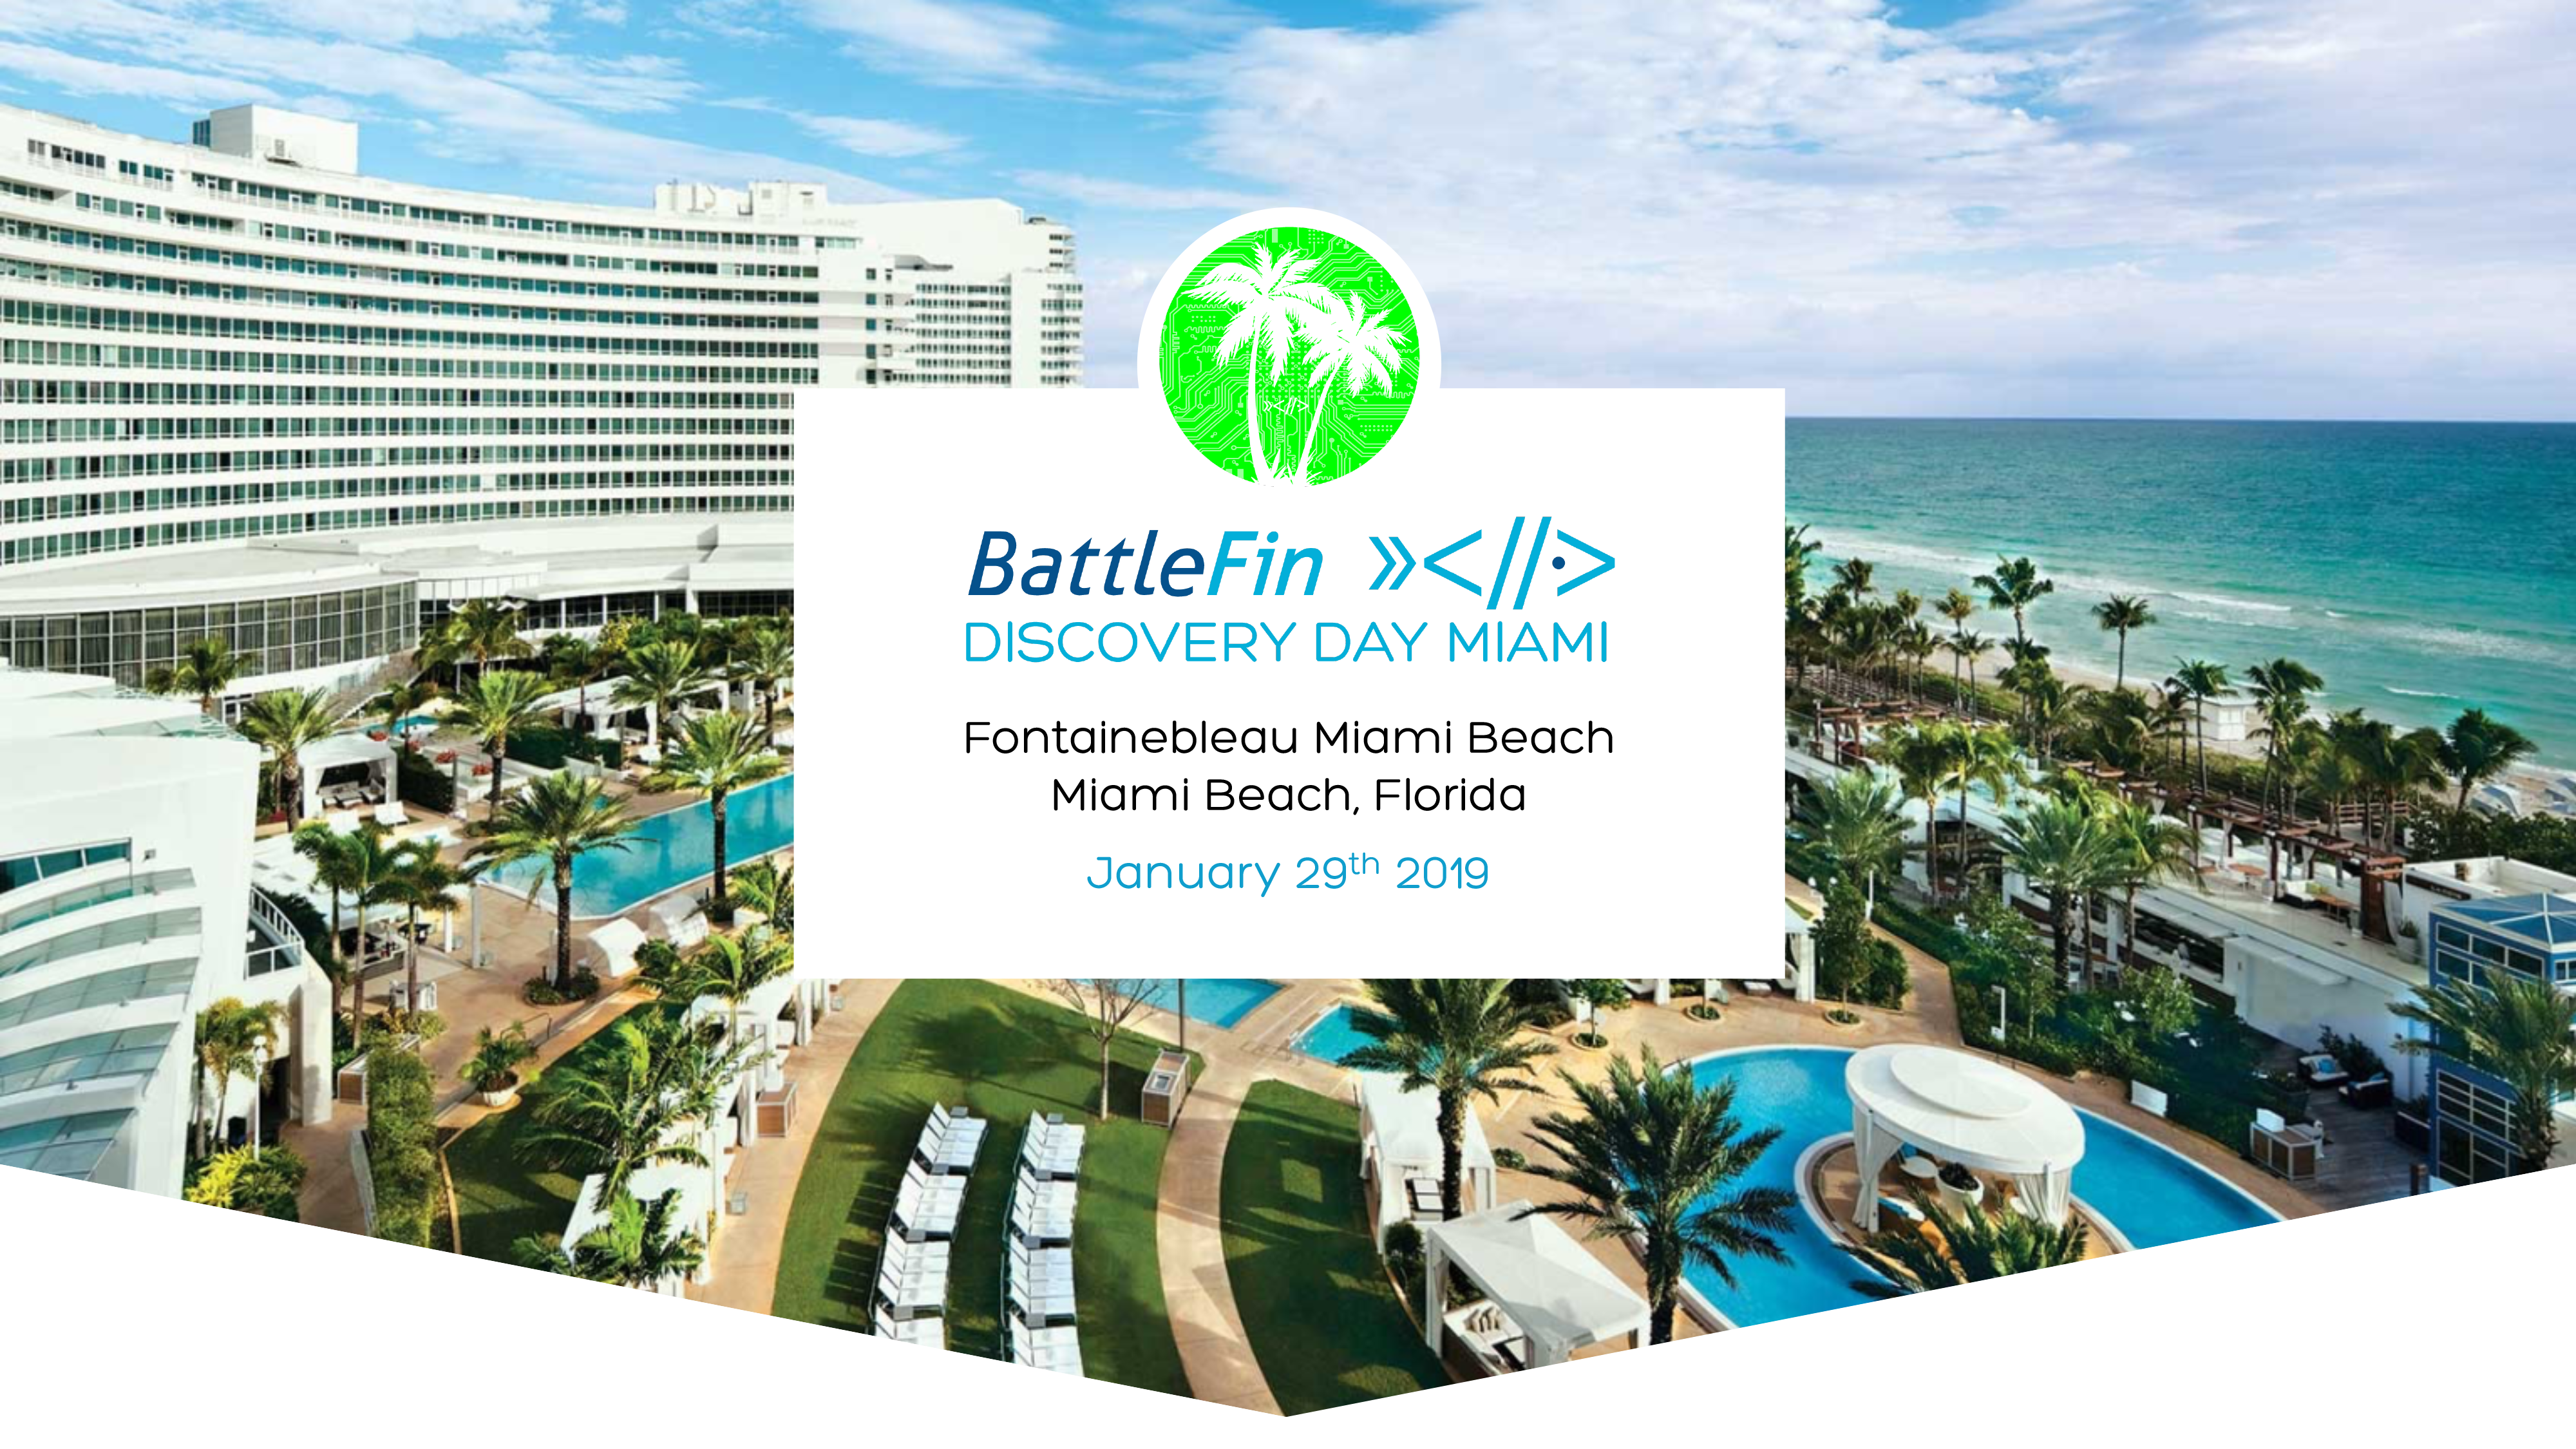 BattleFin Miami 2019